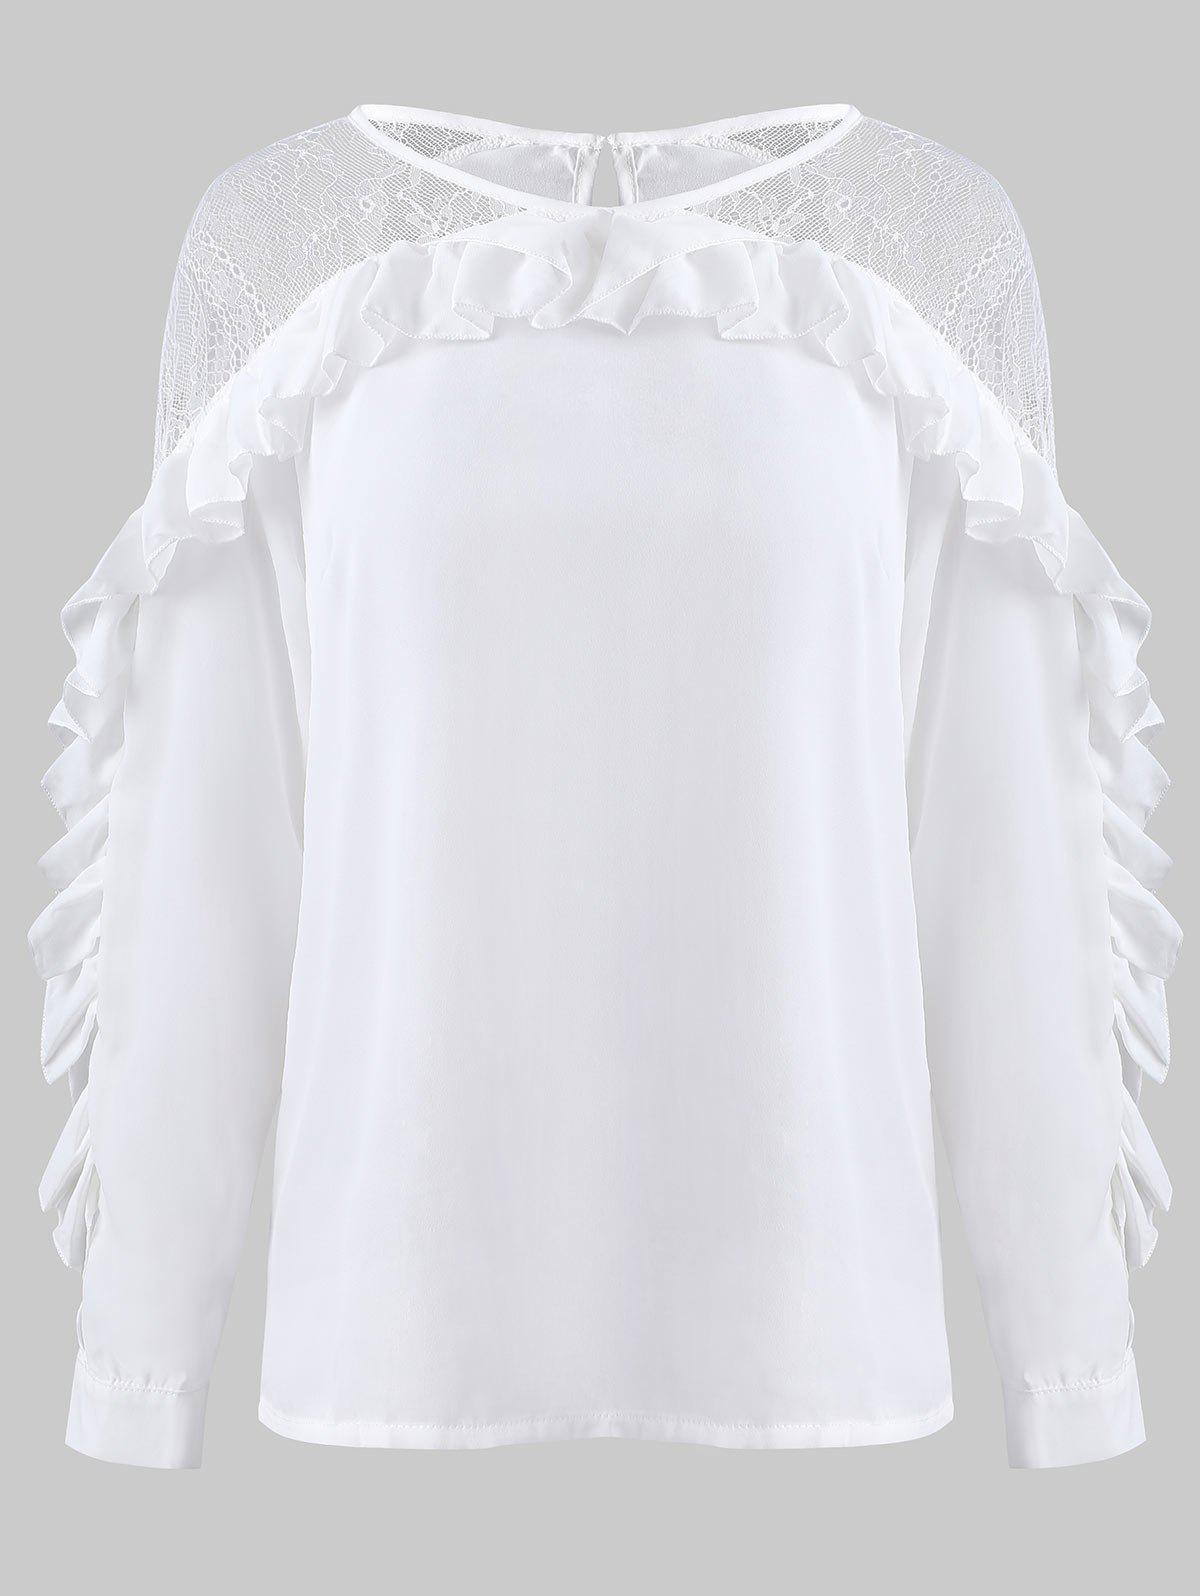 Blouse à volants en dentelle transparente - Blanc XL